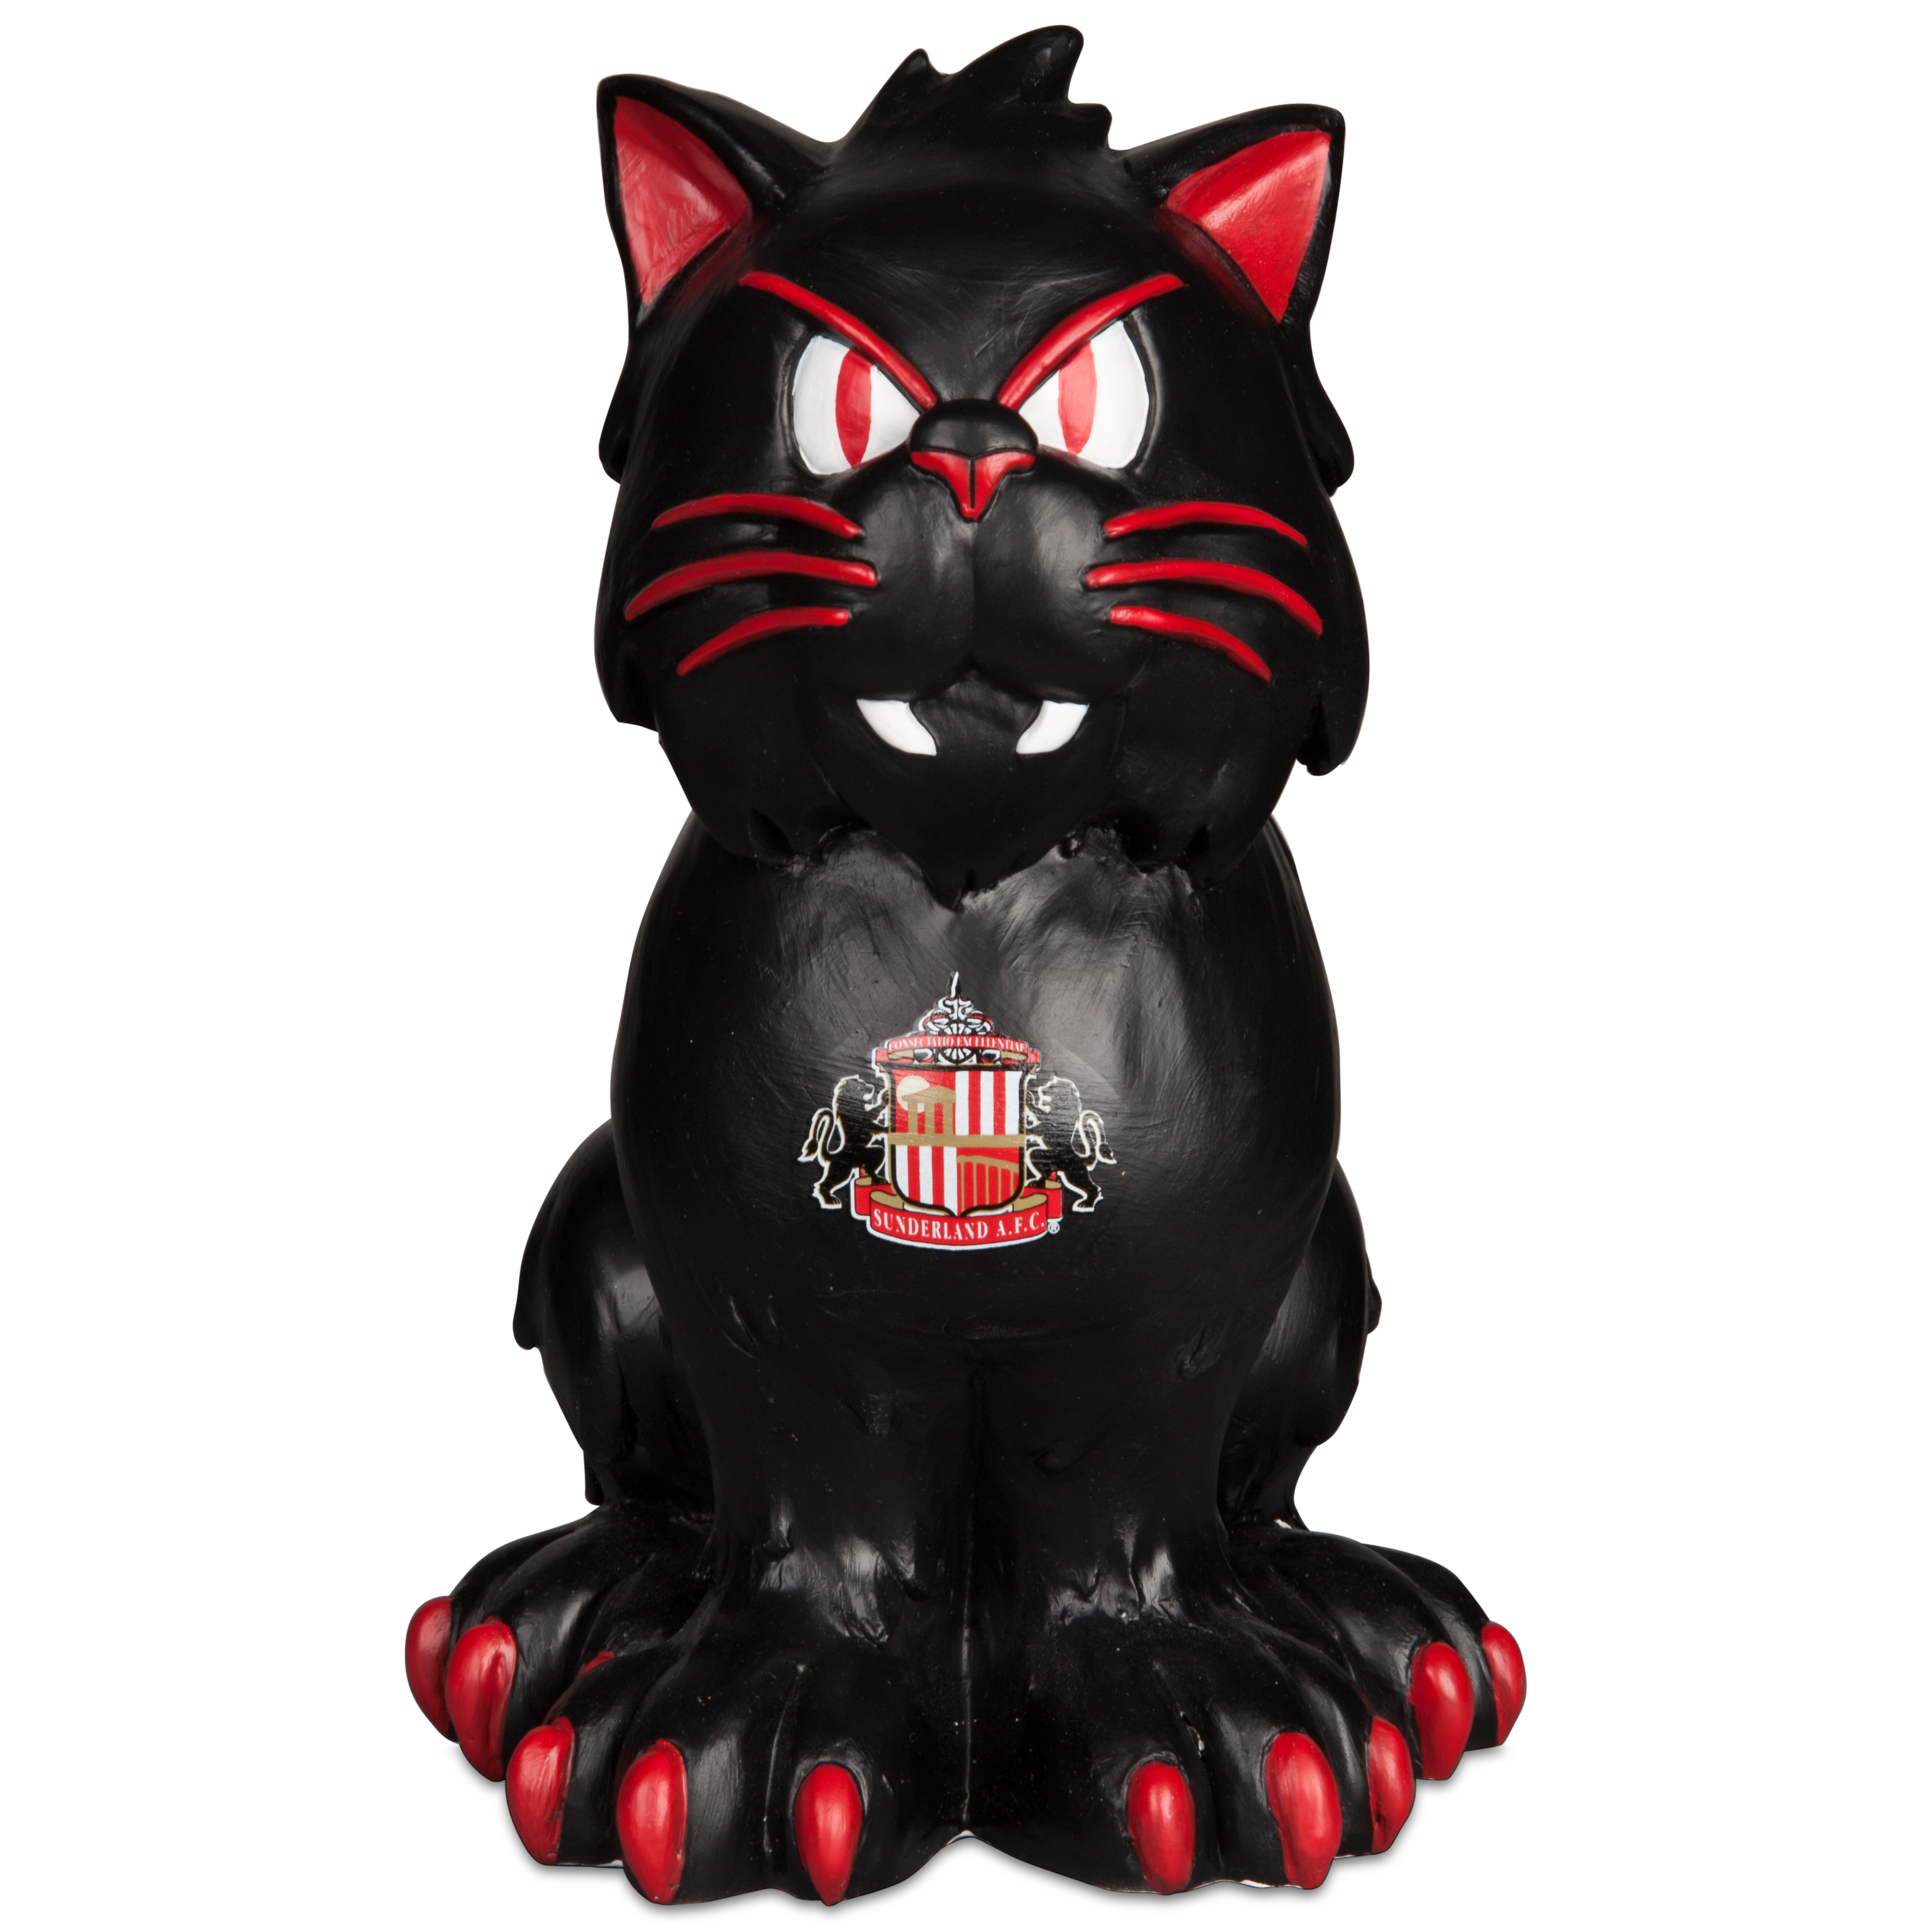 Sunderland Themed Black Cat Garden Statue